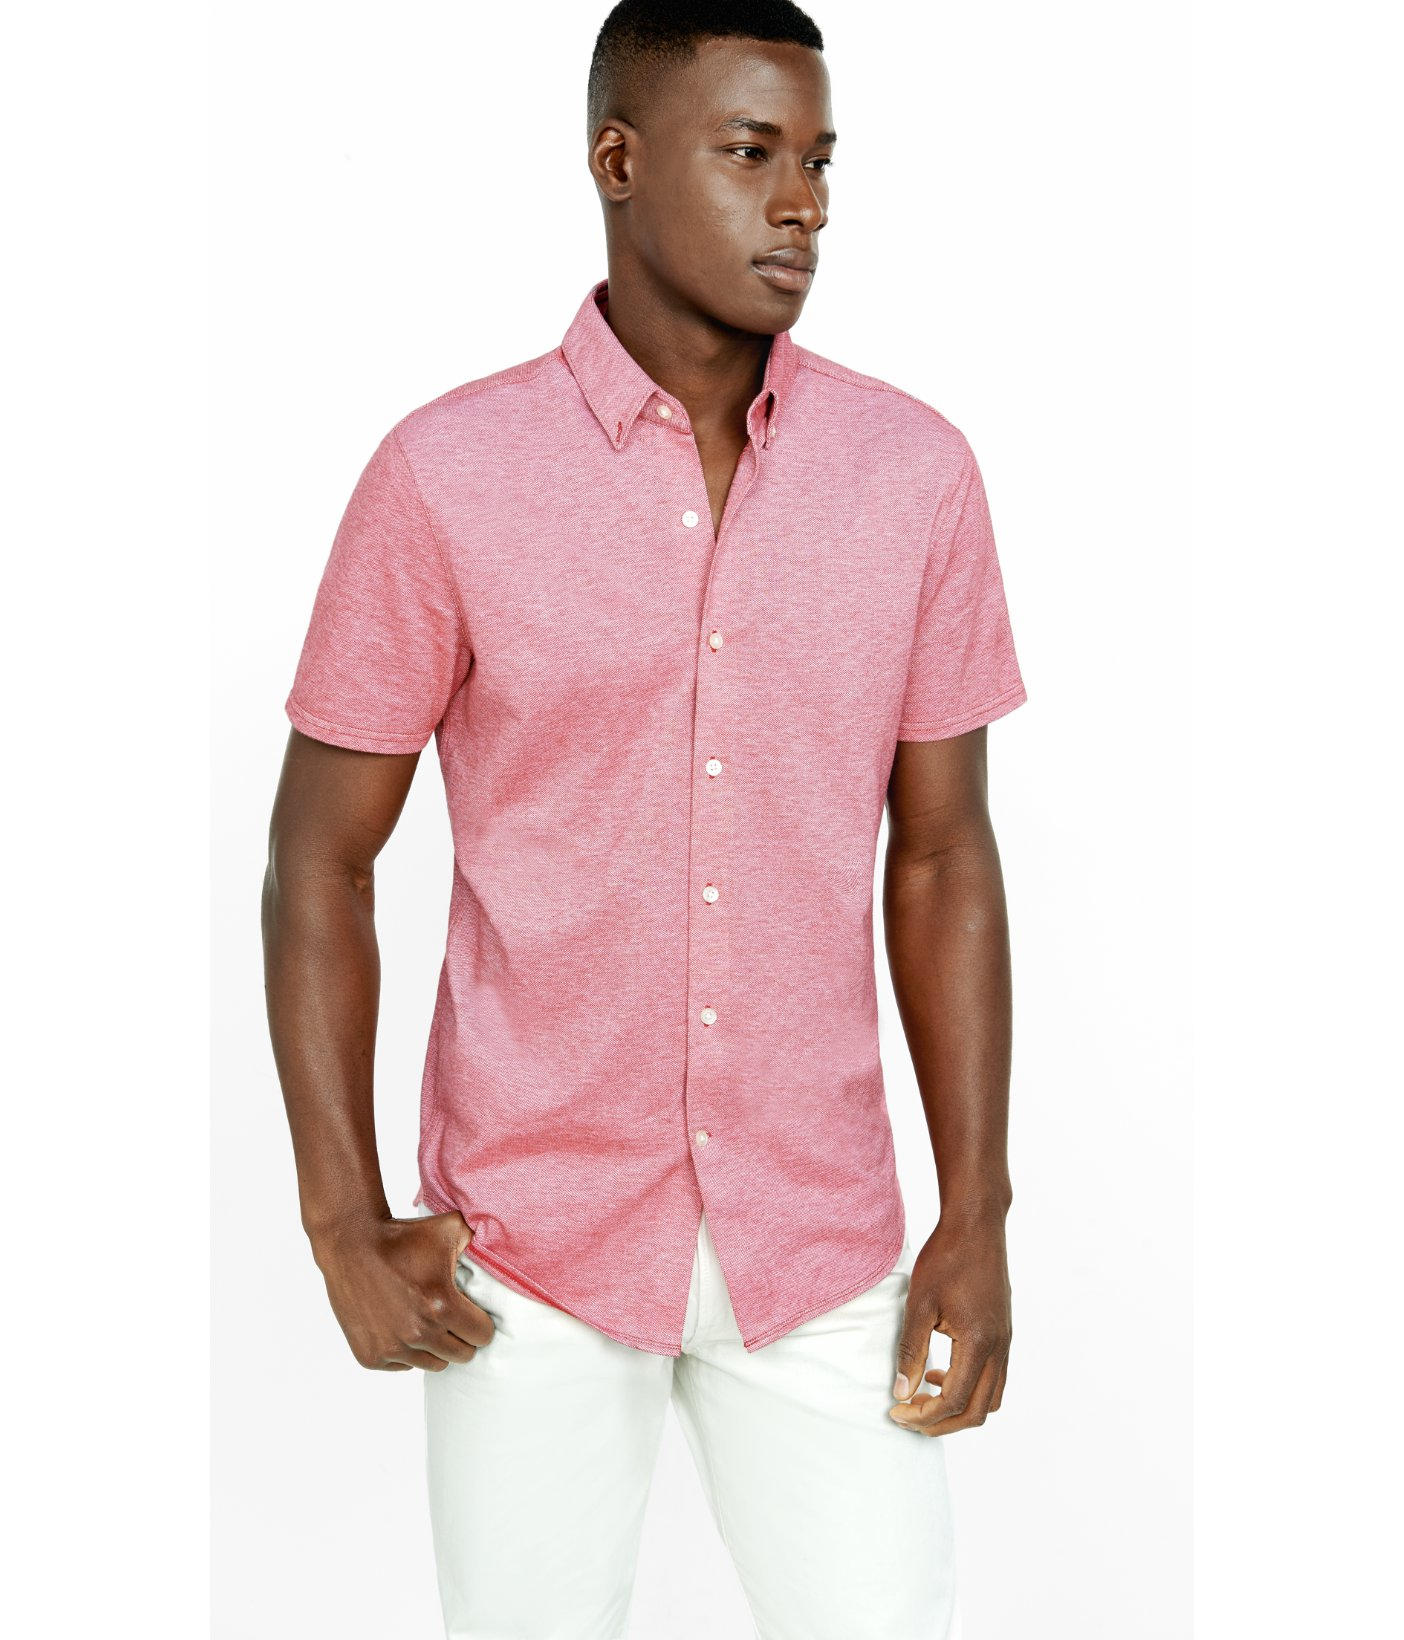 Button Down Collar Short Sleeve Shirts | Is Shirt